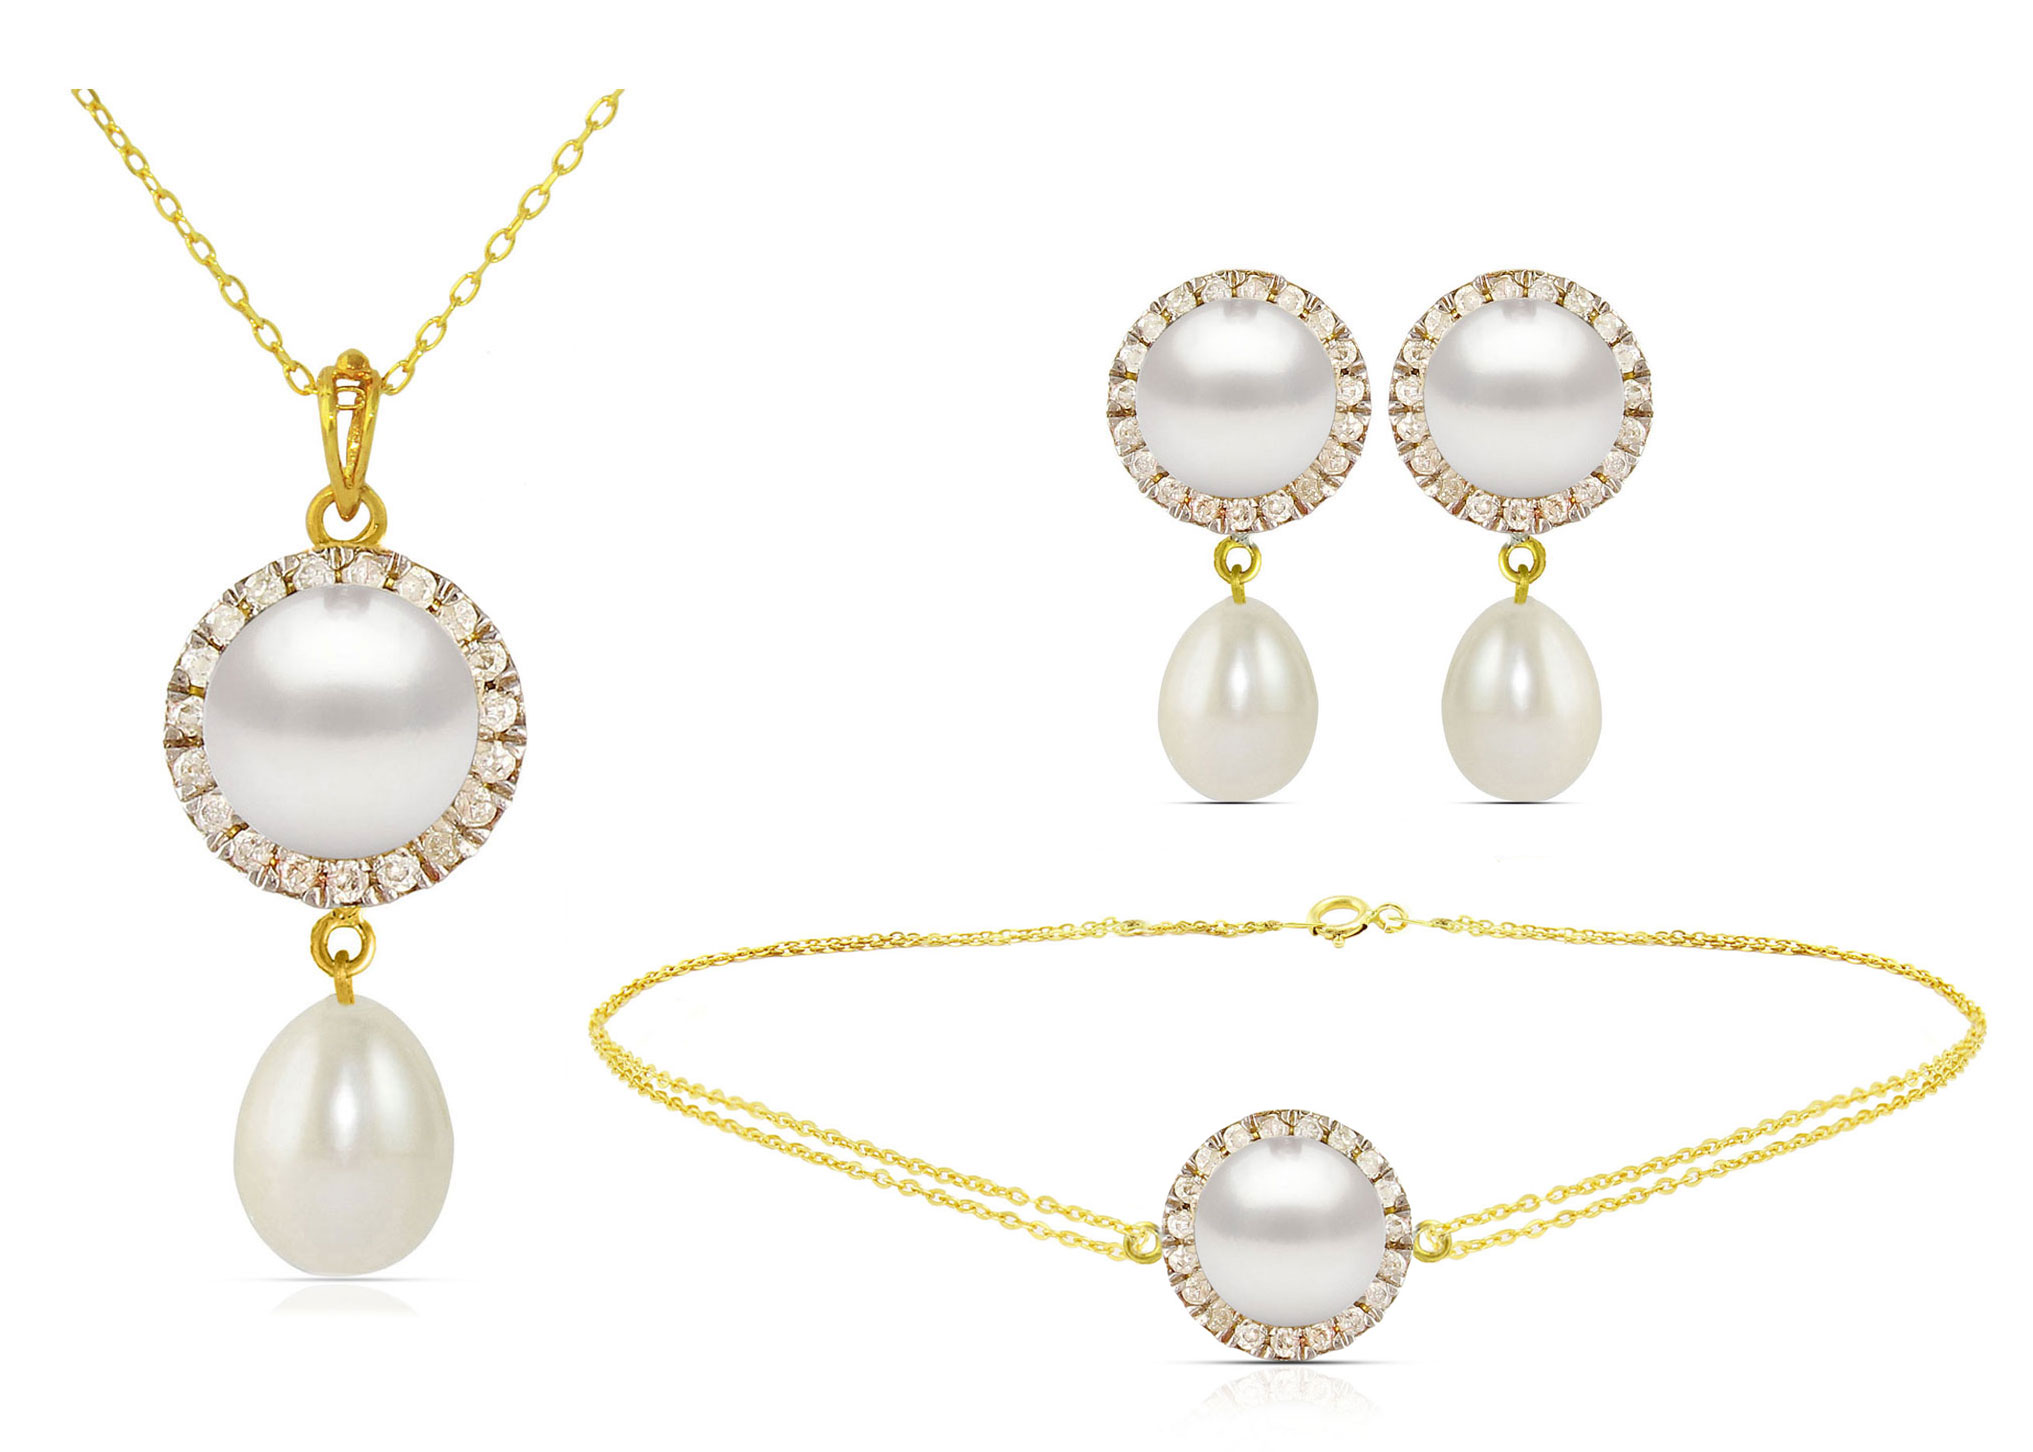 Vera Perla 18K Solid Gold 0.40ct Genuine Diamonds and 6-7mm White Pearl Jewelry Set,  3 Pcs